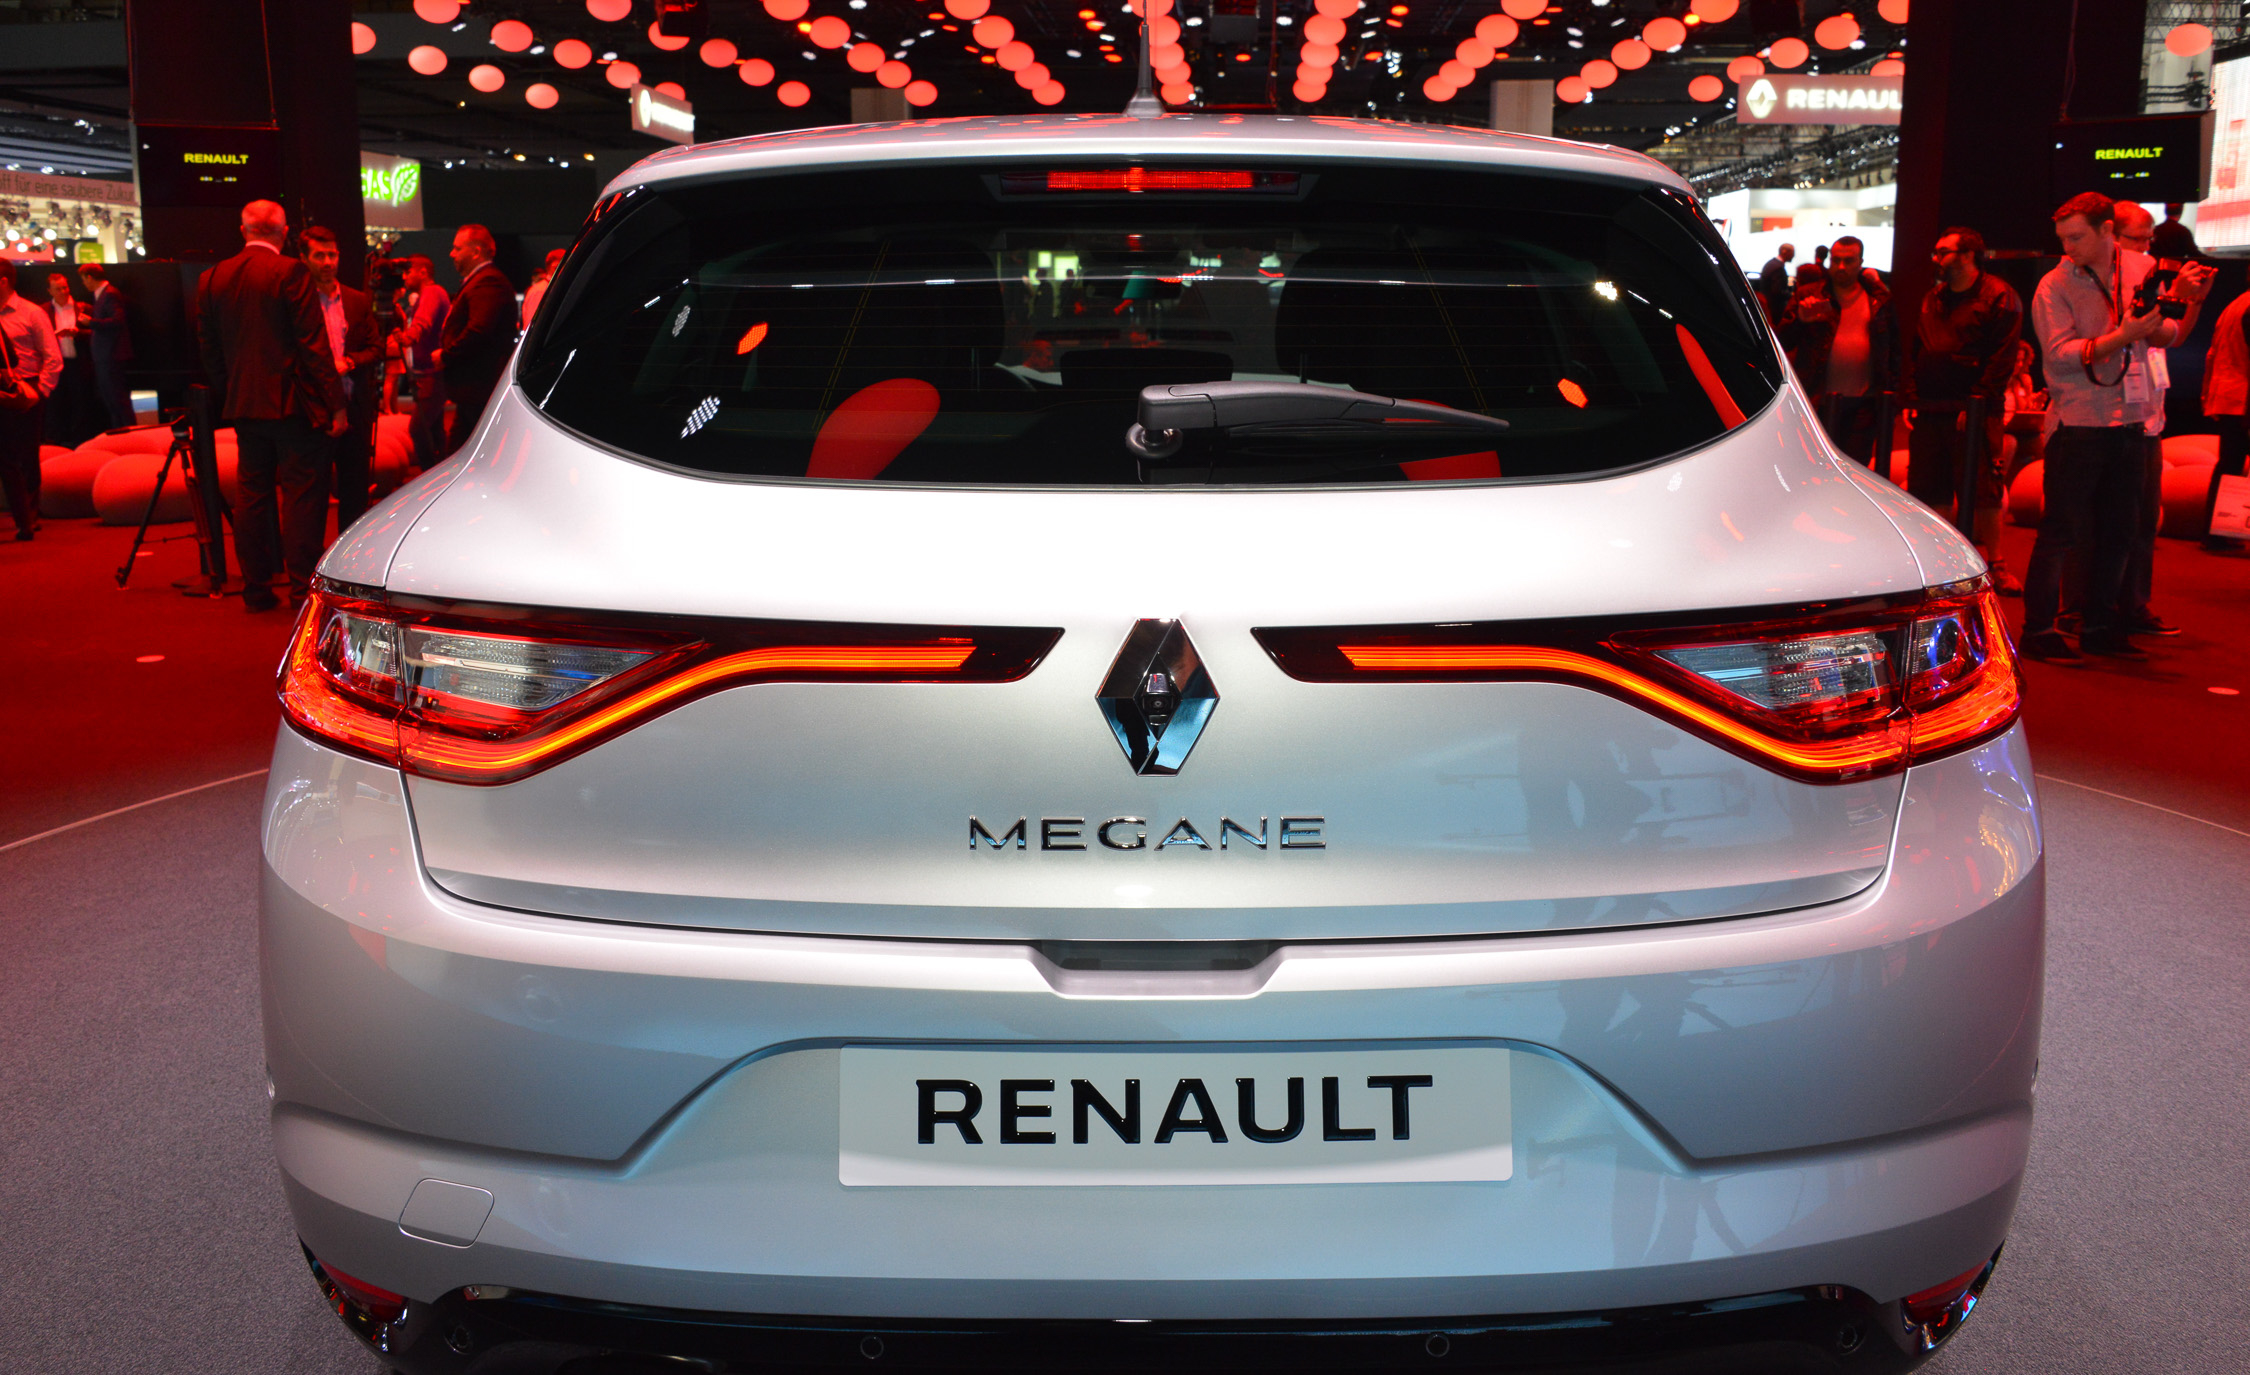 2016 Renault Megane Rear End Photo (Photo 16 of 27)